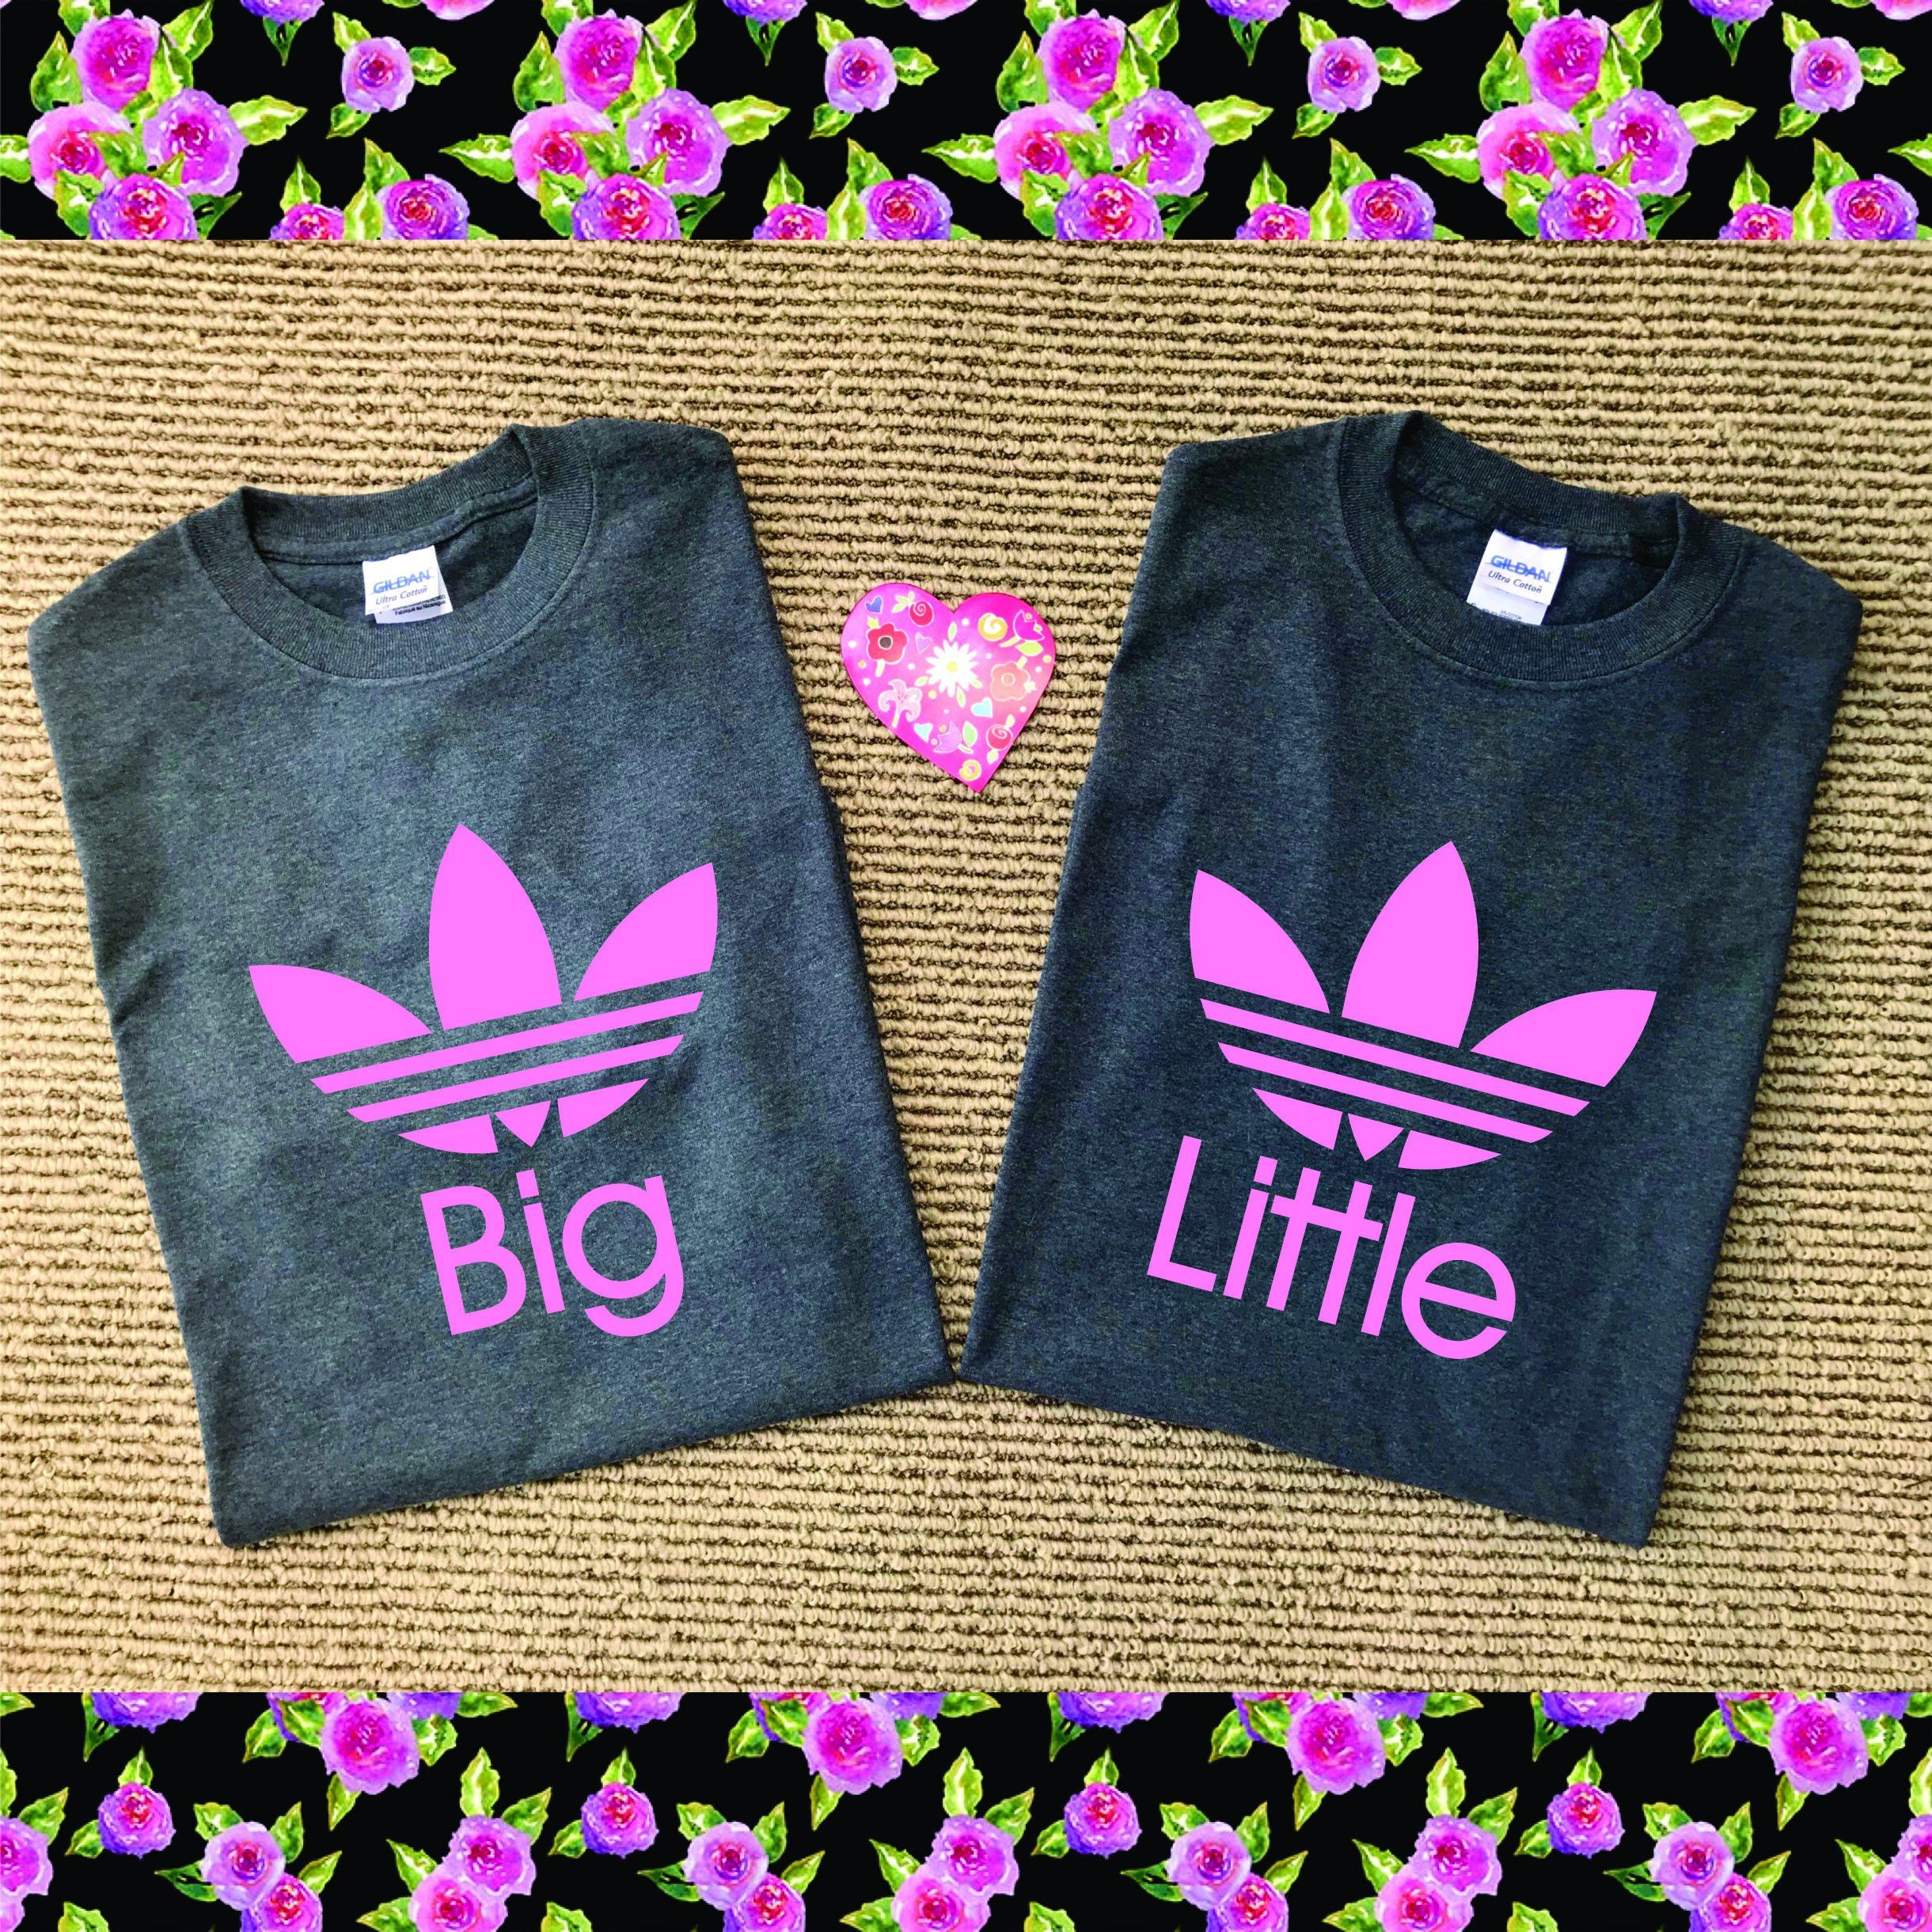 Big Little shirts || Big Little Reveal || Yin Yang || Sorority Sisters || Greek Life || Sorority Family || Cheer Sisters #biglittlereveal